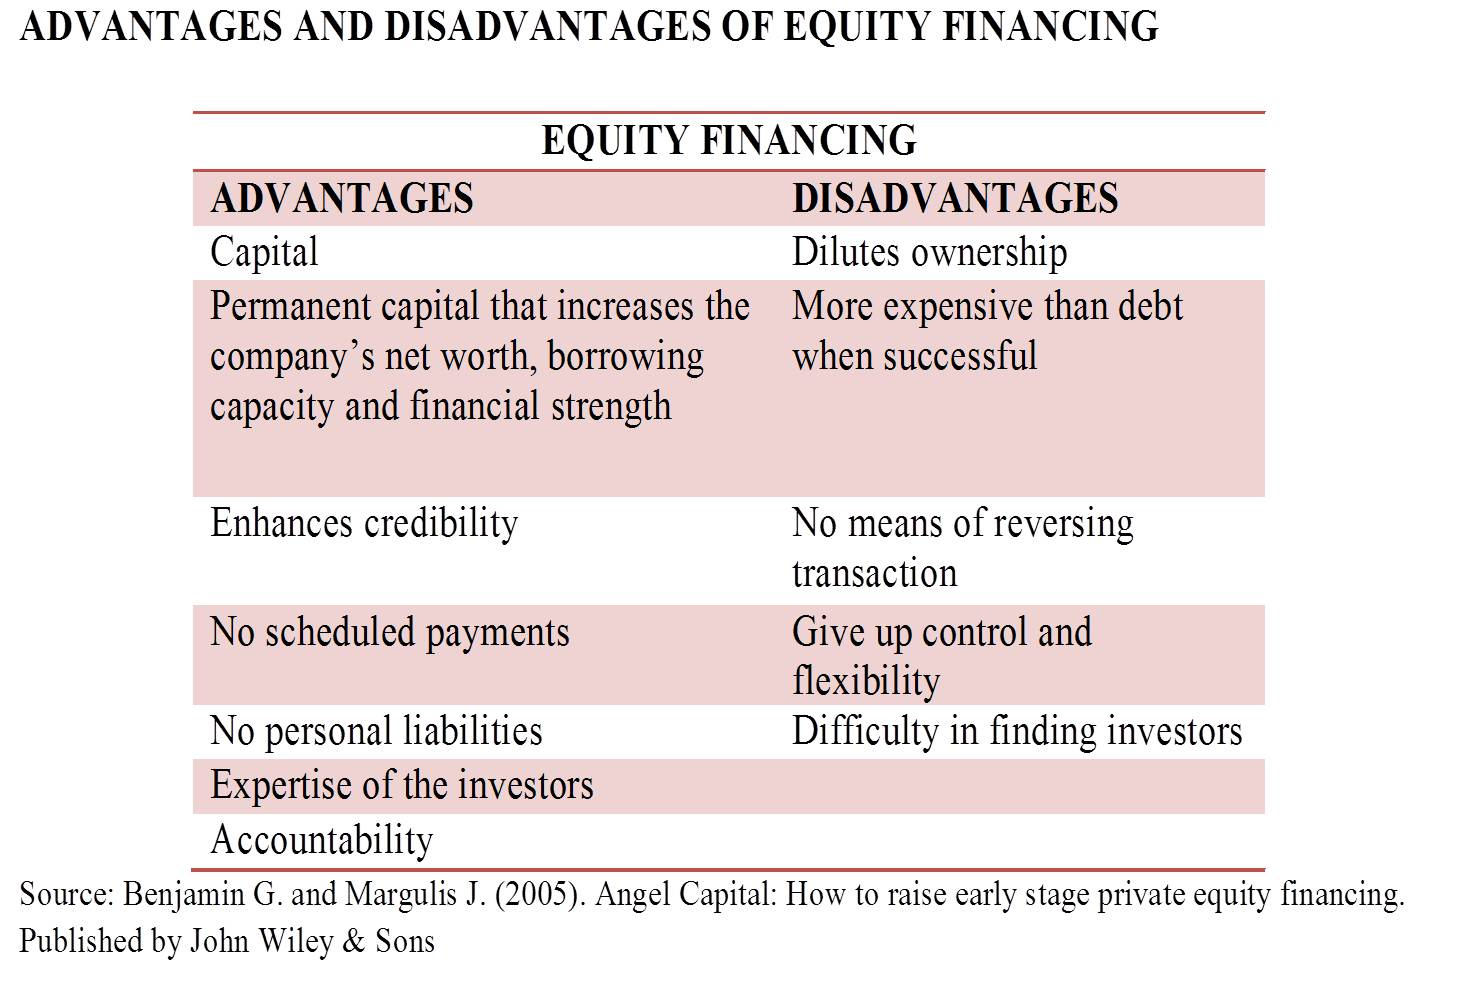 Debt- Versus Equity-Financing in Auction Designs